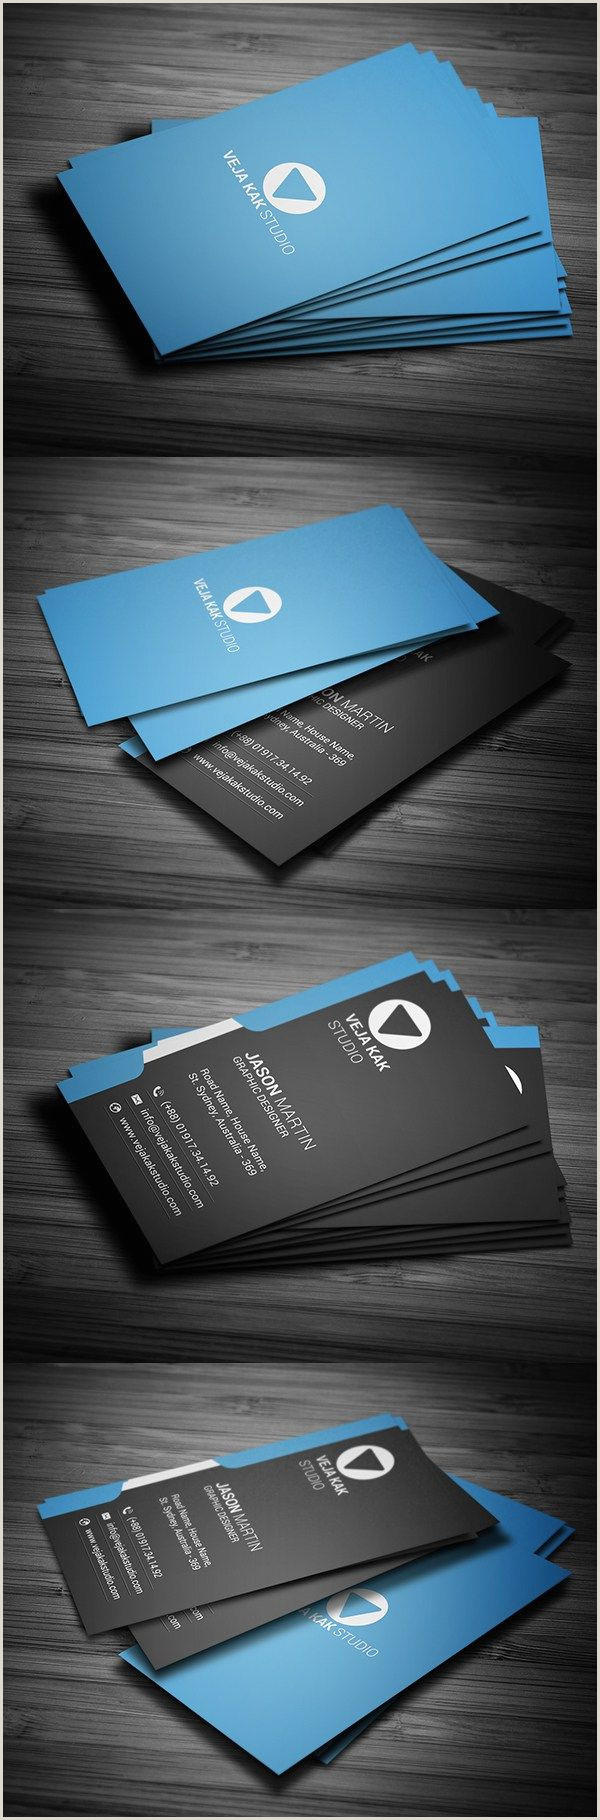 Information On Business Cards 40 Best Business Card Design Images In 2020